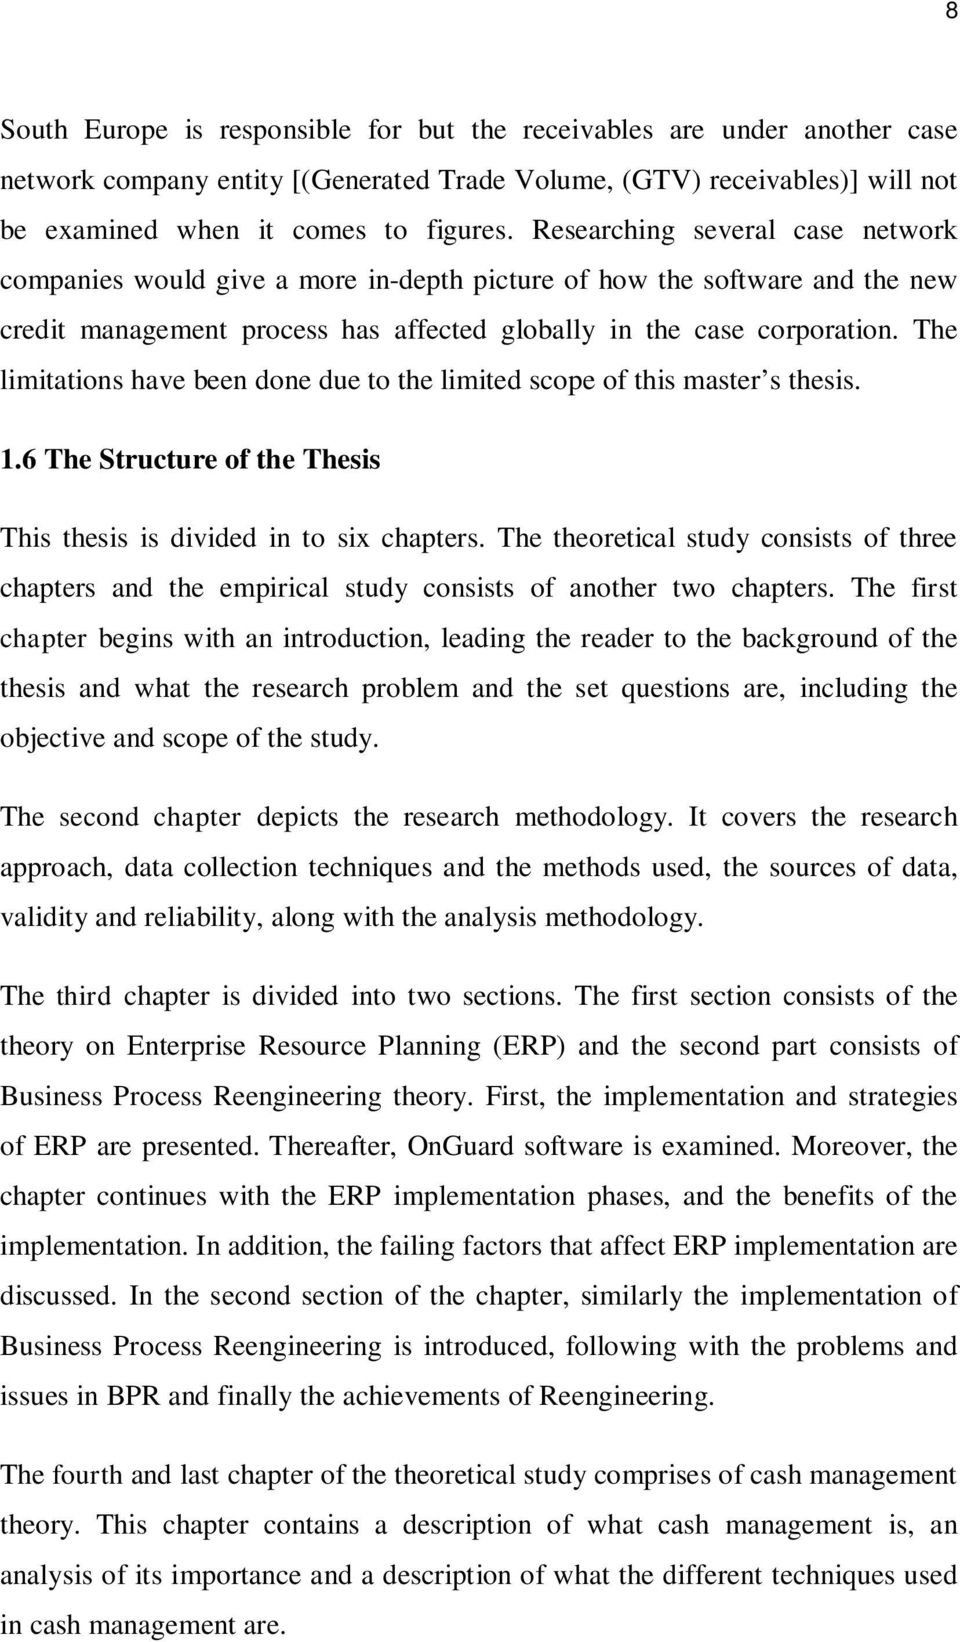 The limitations have been done due to the limited scope of this master s thesis. 1.6 The Structure of the Thesis This thesis is divided in to six chapters.